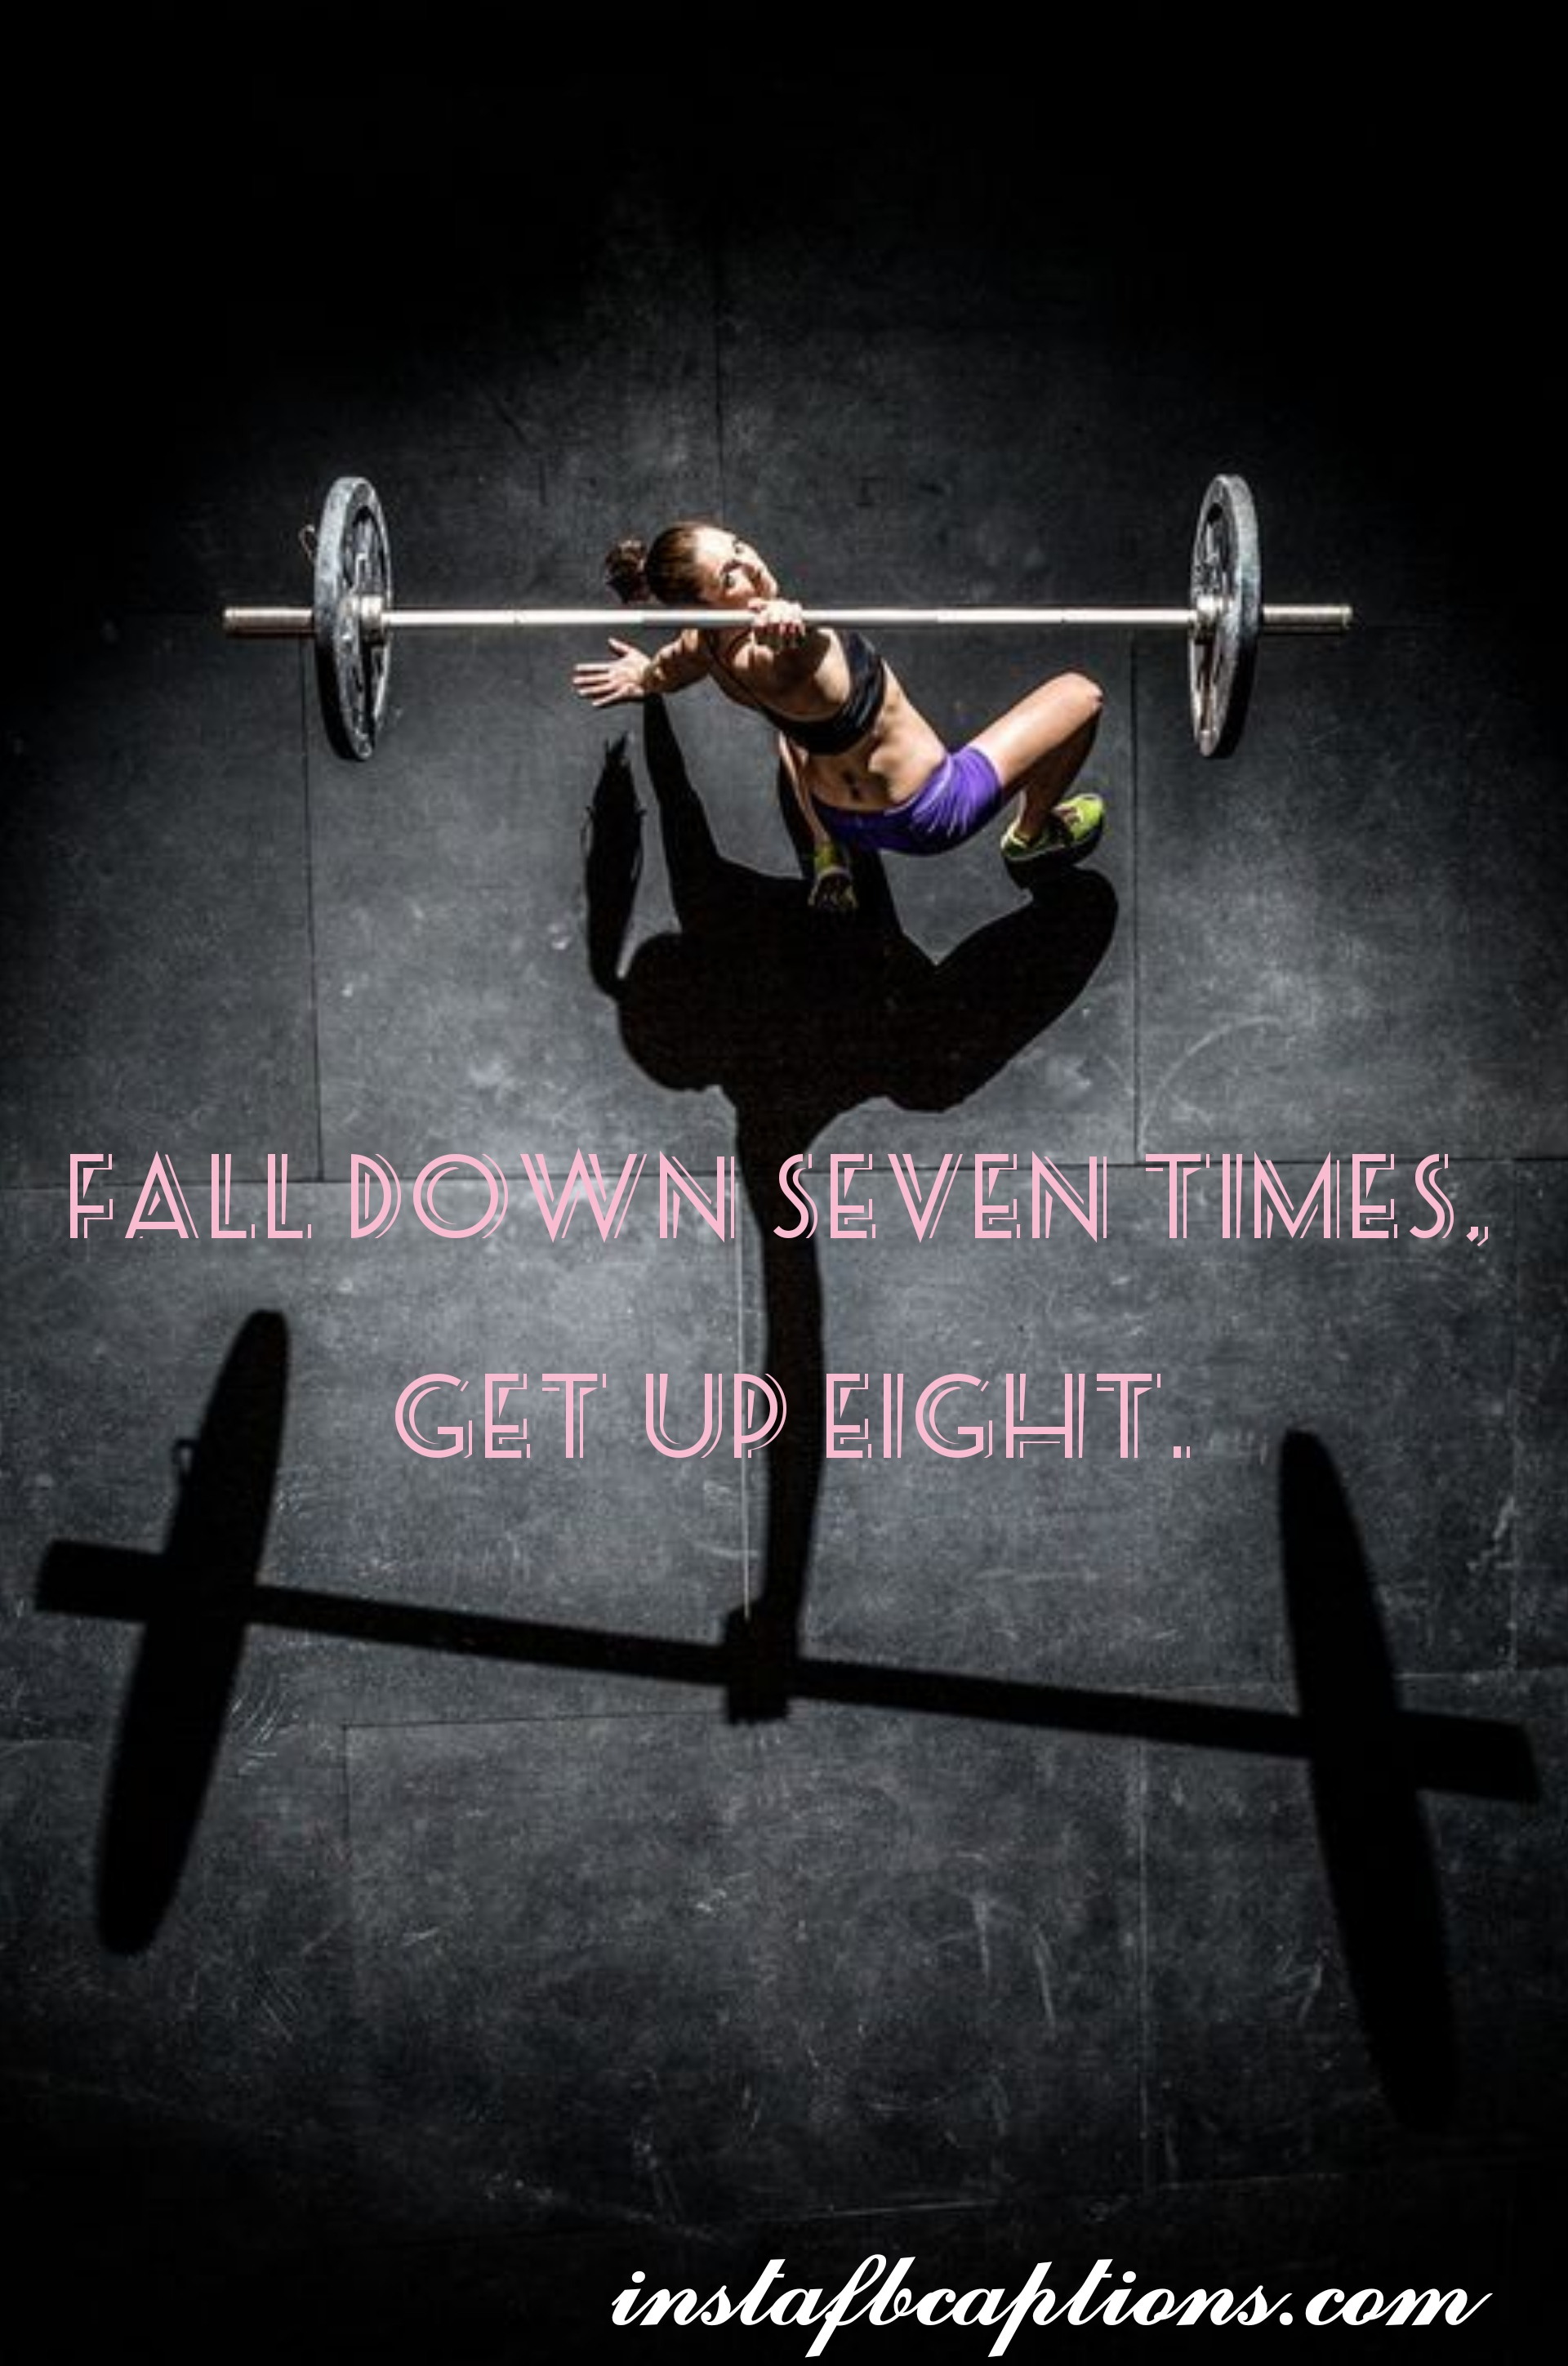 Fall Down Seven Times, Get Up Eight  - Fall down seven times get up Eight - Fitness Instagram caption||(Gym Goals Home Workout)